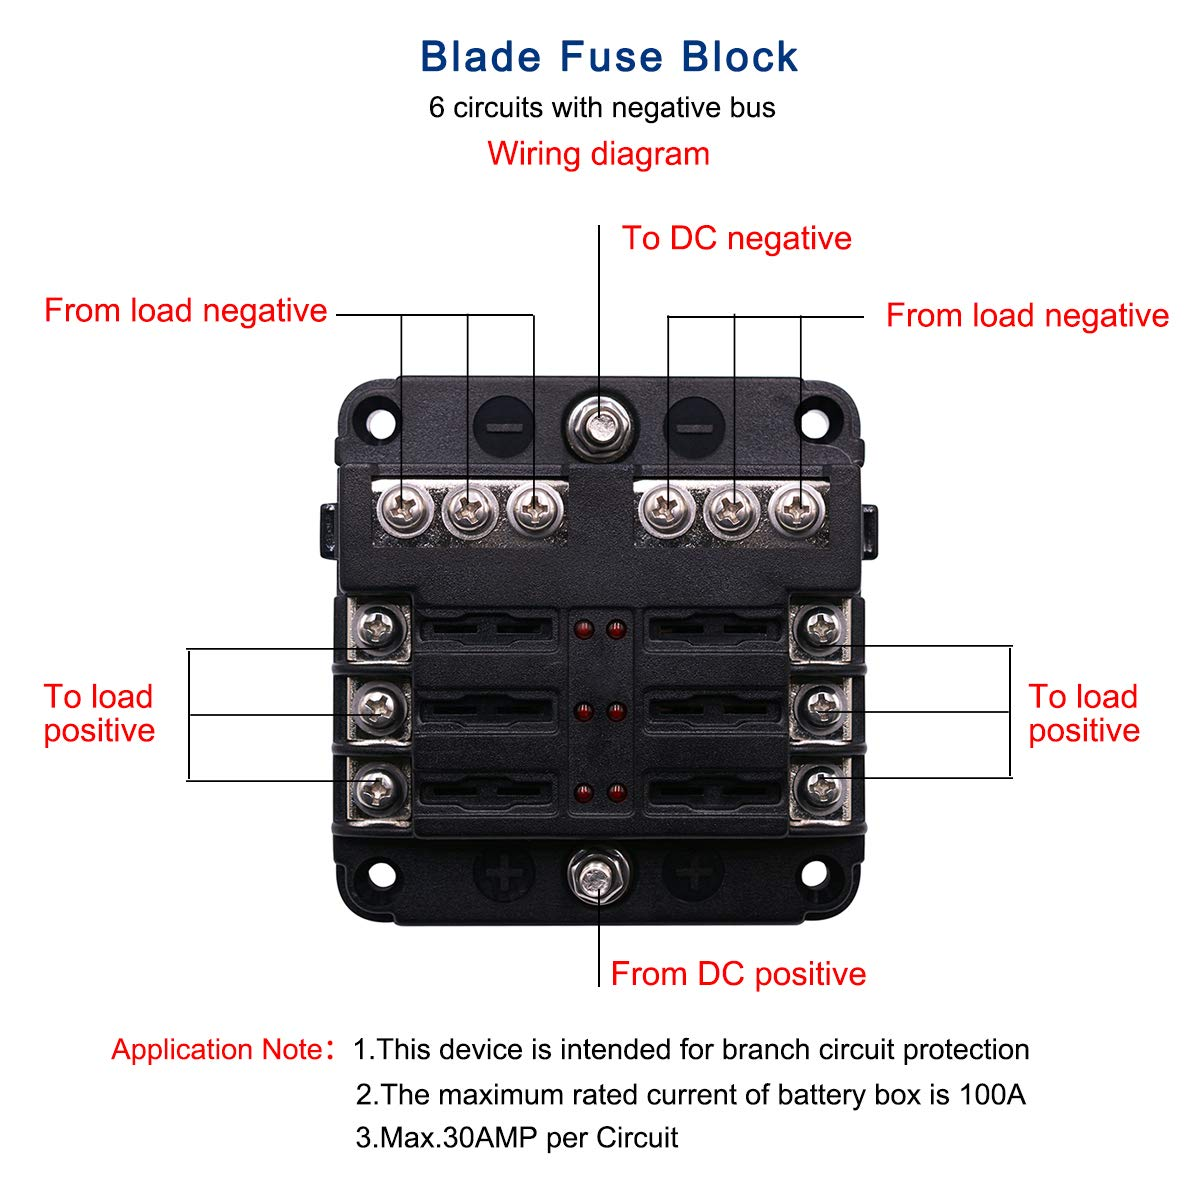 Autorocking 6 Way Blade Fuse Box Block Holder With Led Dc Wiring Diagram Lights And Waterproof Dustproof Cover For Automobiles Cars Suvs Rvs Buses Yachts Boats